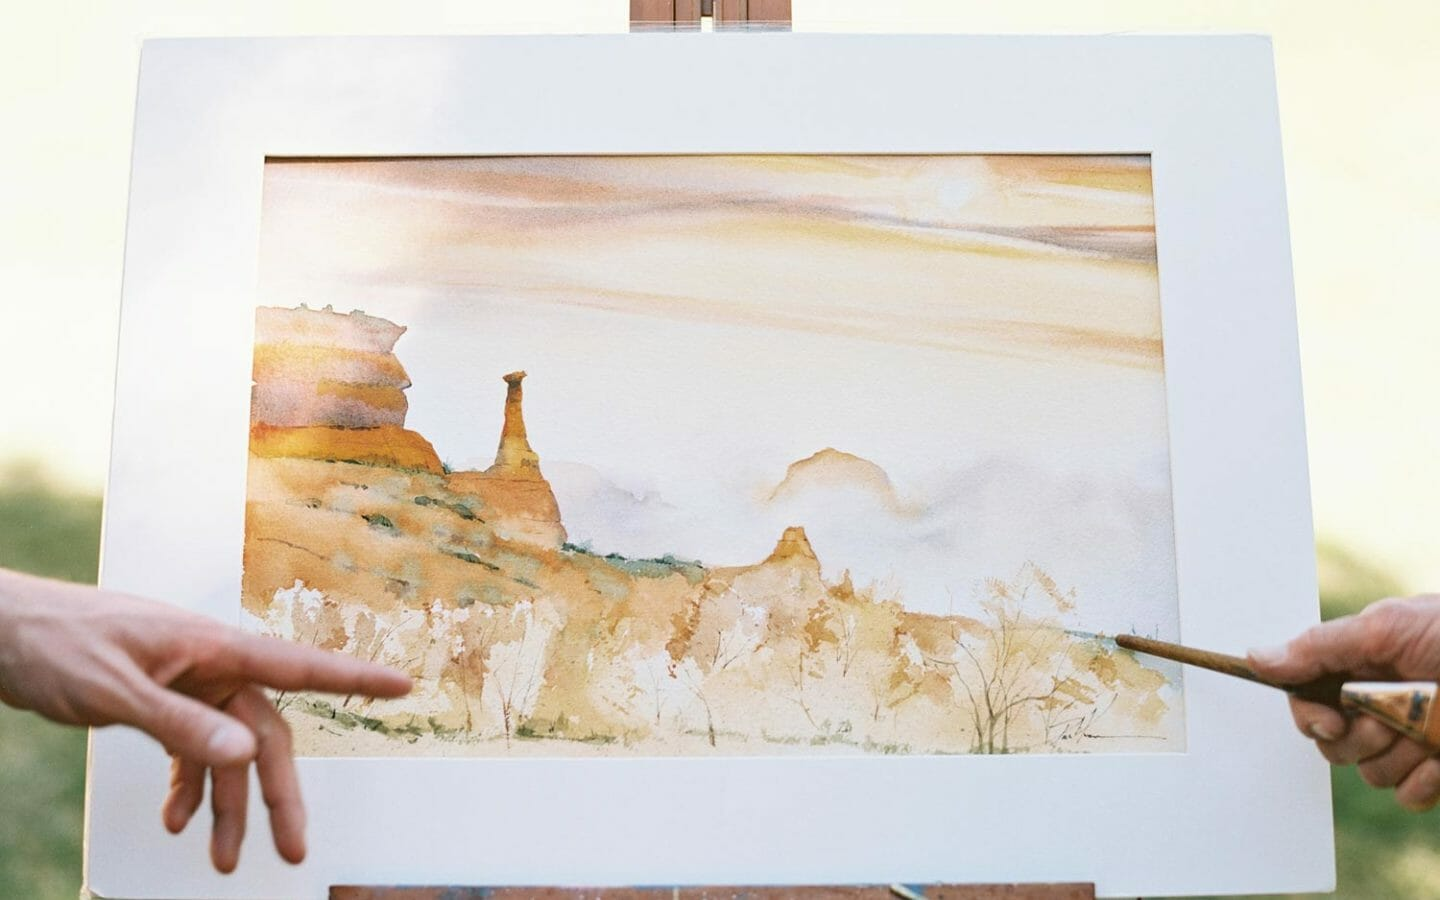 watercolor painting of a desert